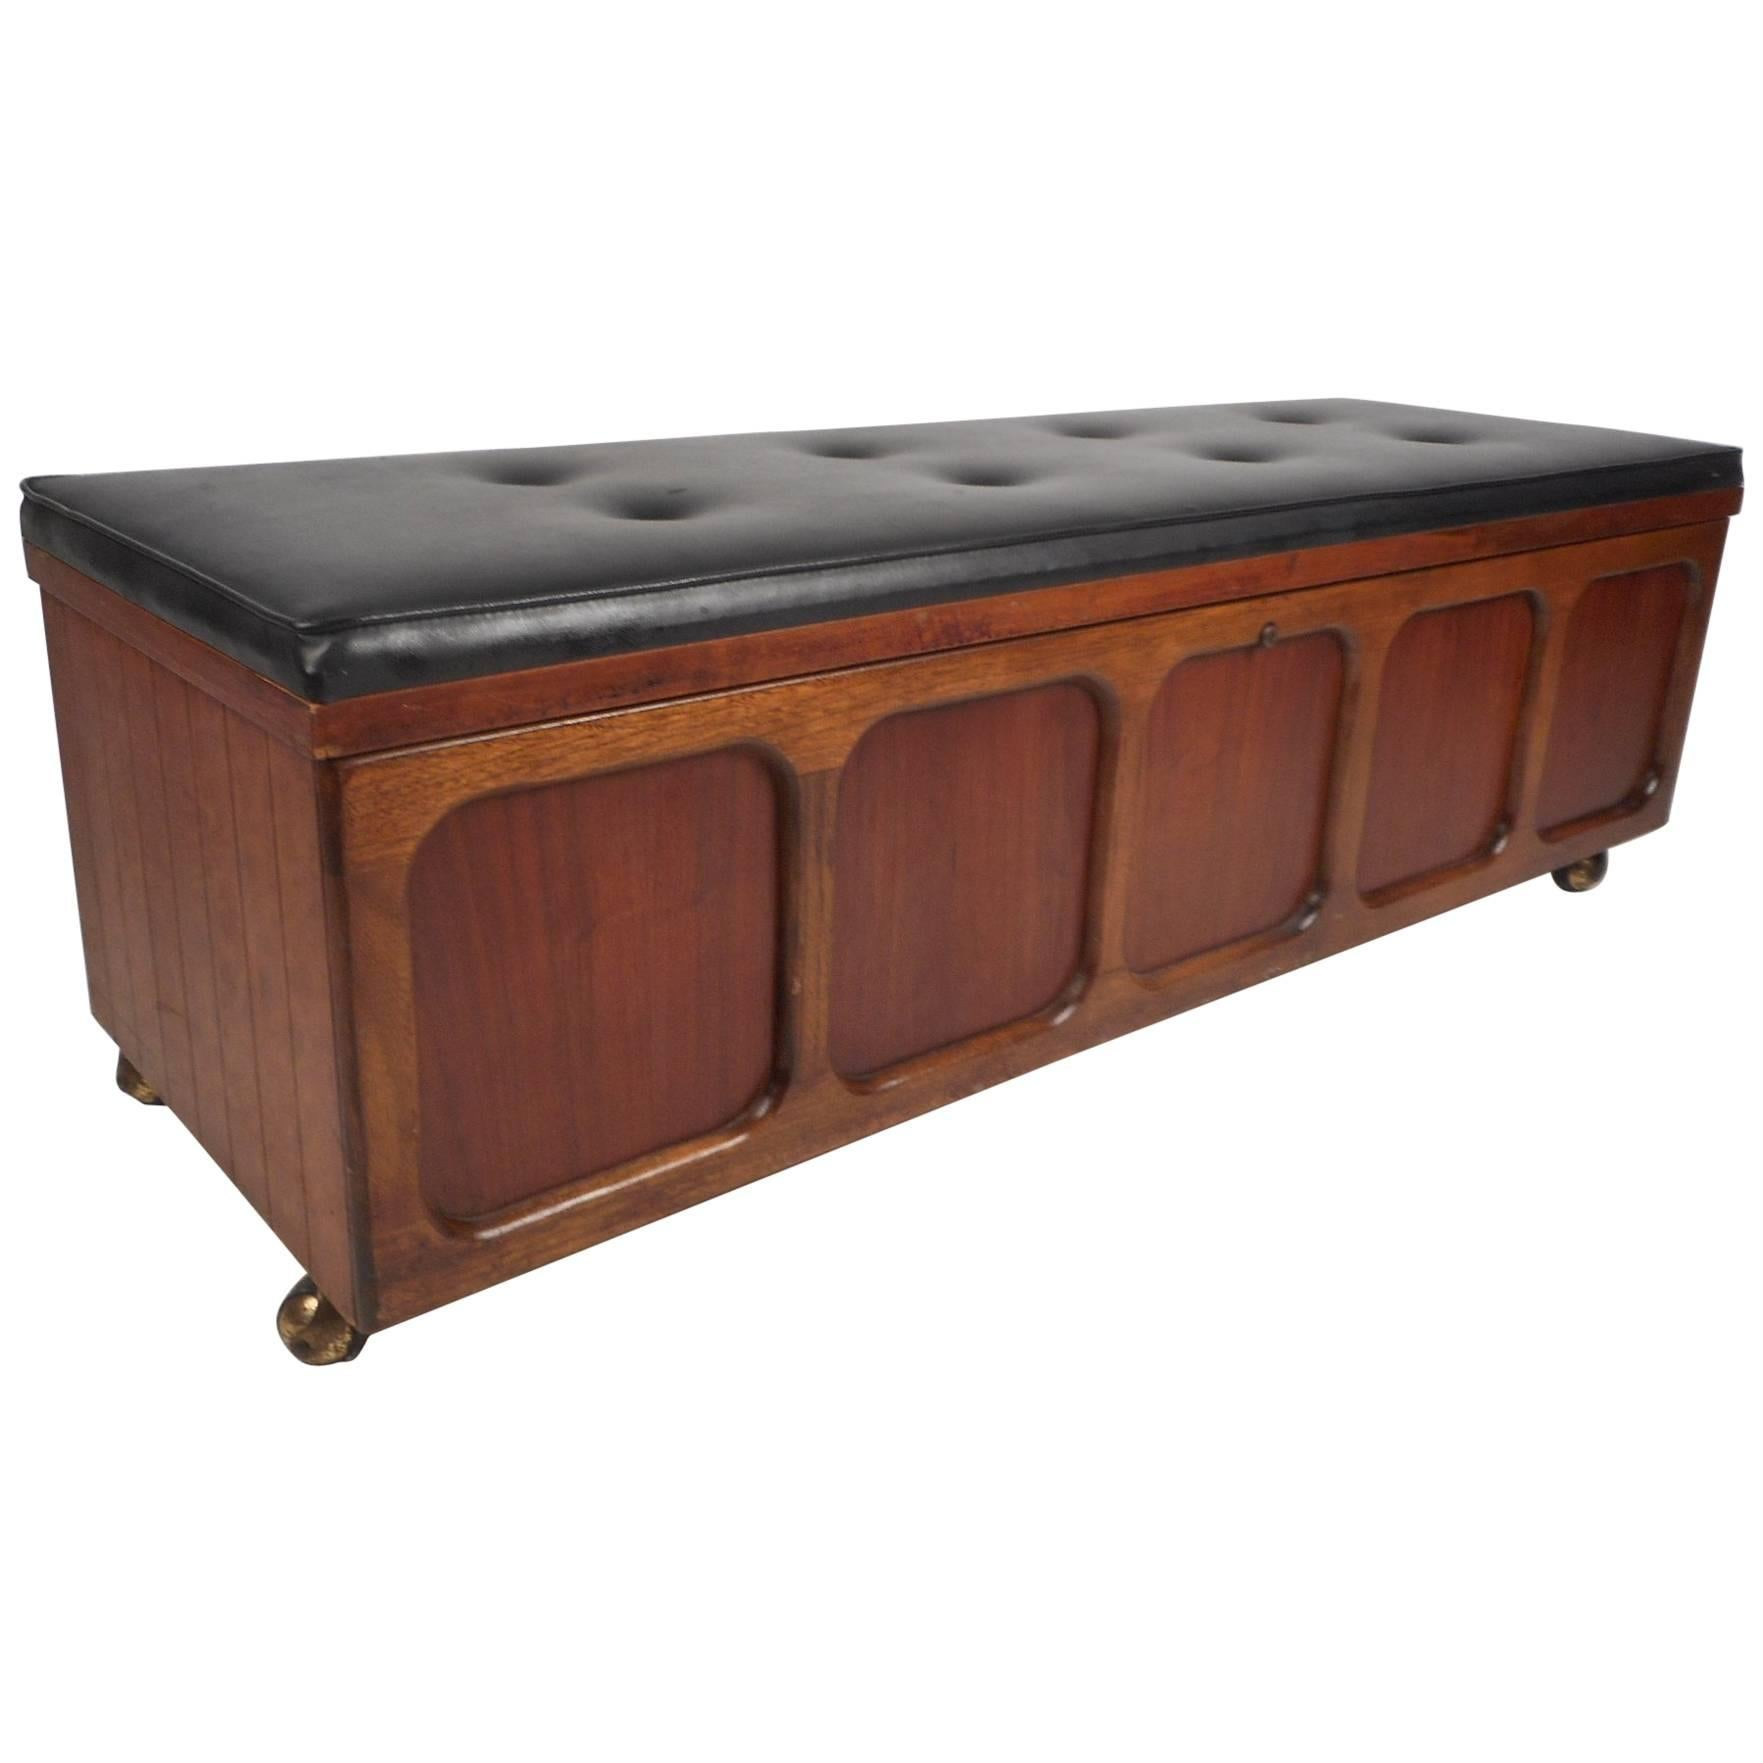 Beau Vintage Modern Cedar Chest/Bench By Lane Furniture For Sale